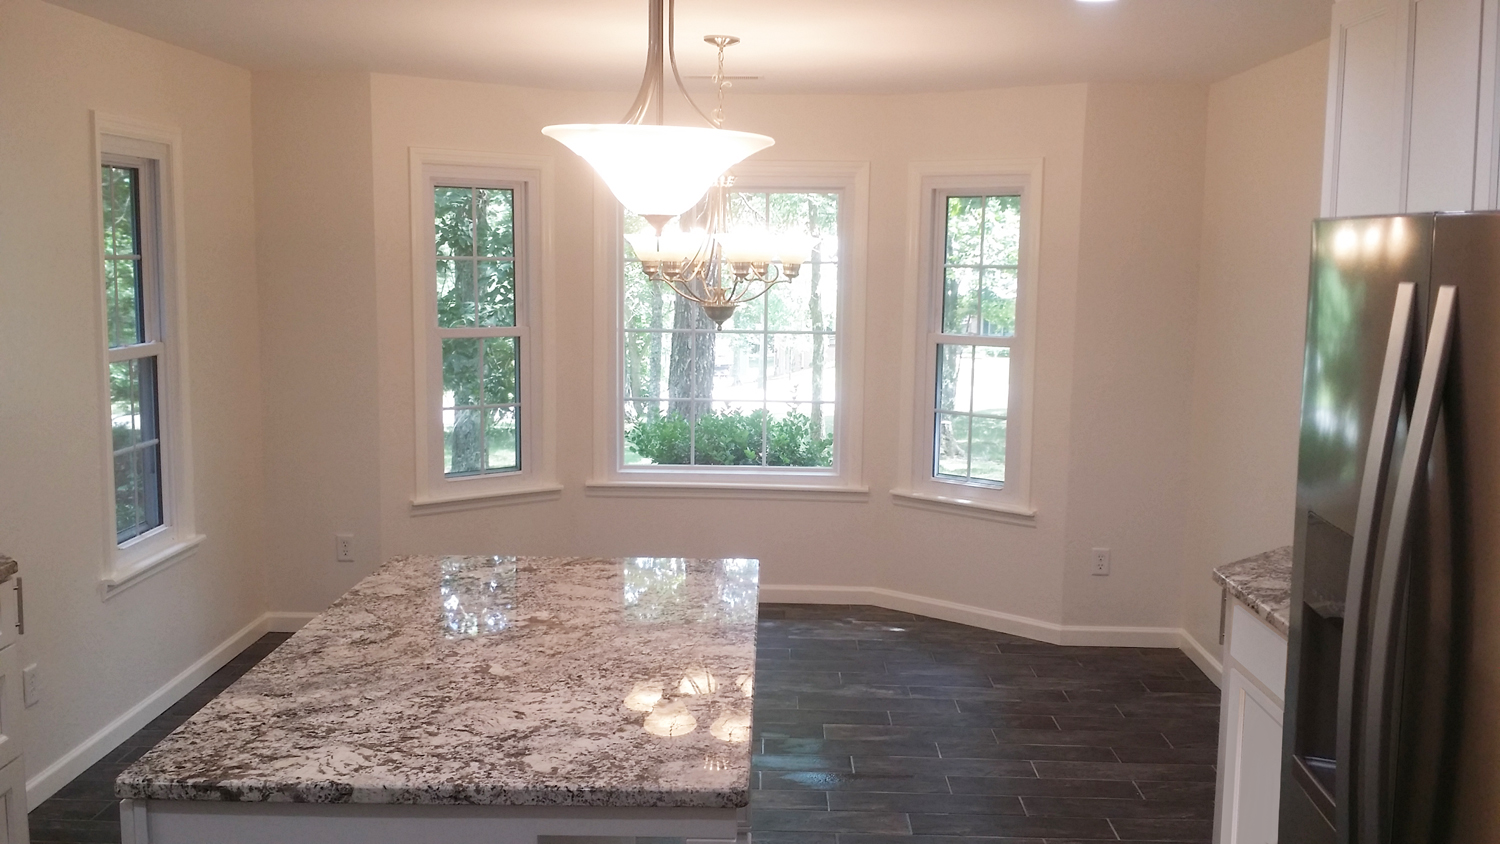 Interior Painting - Beautiful new kitchen with detail painted trim..